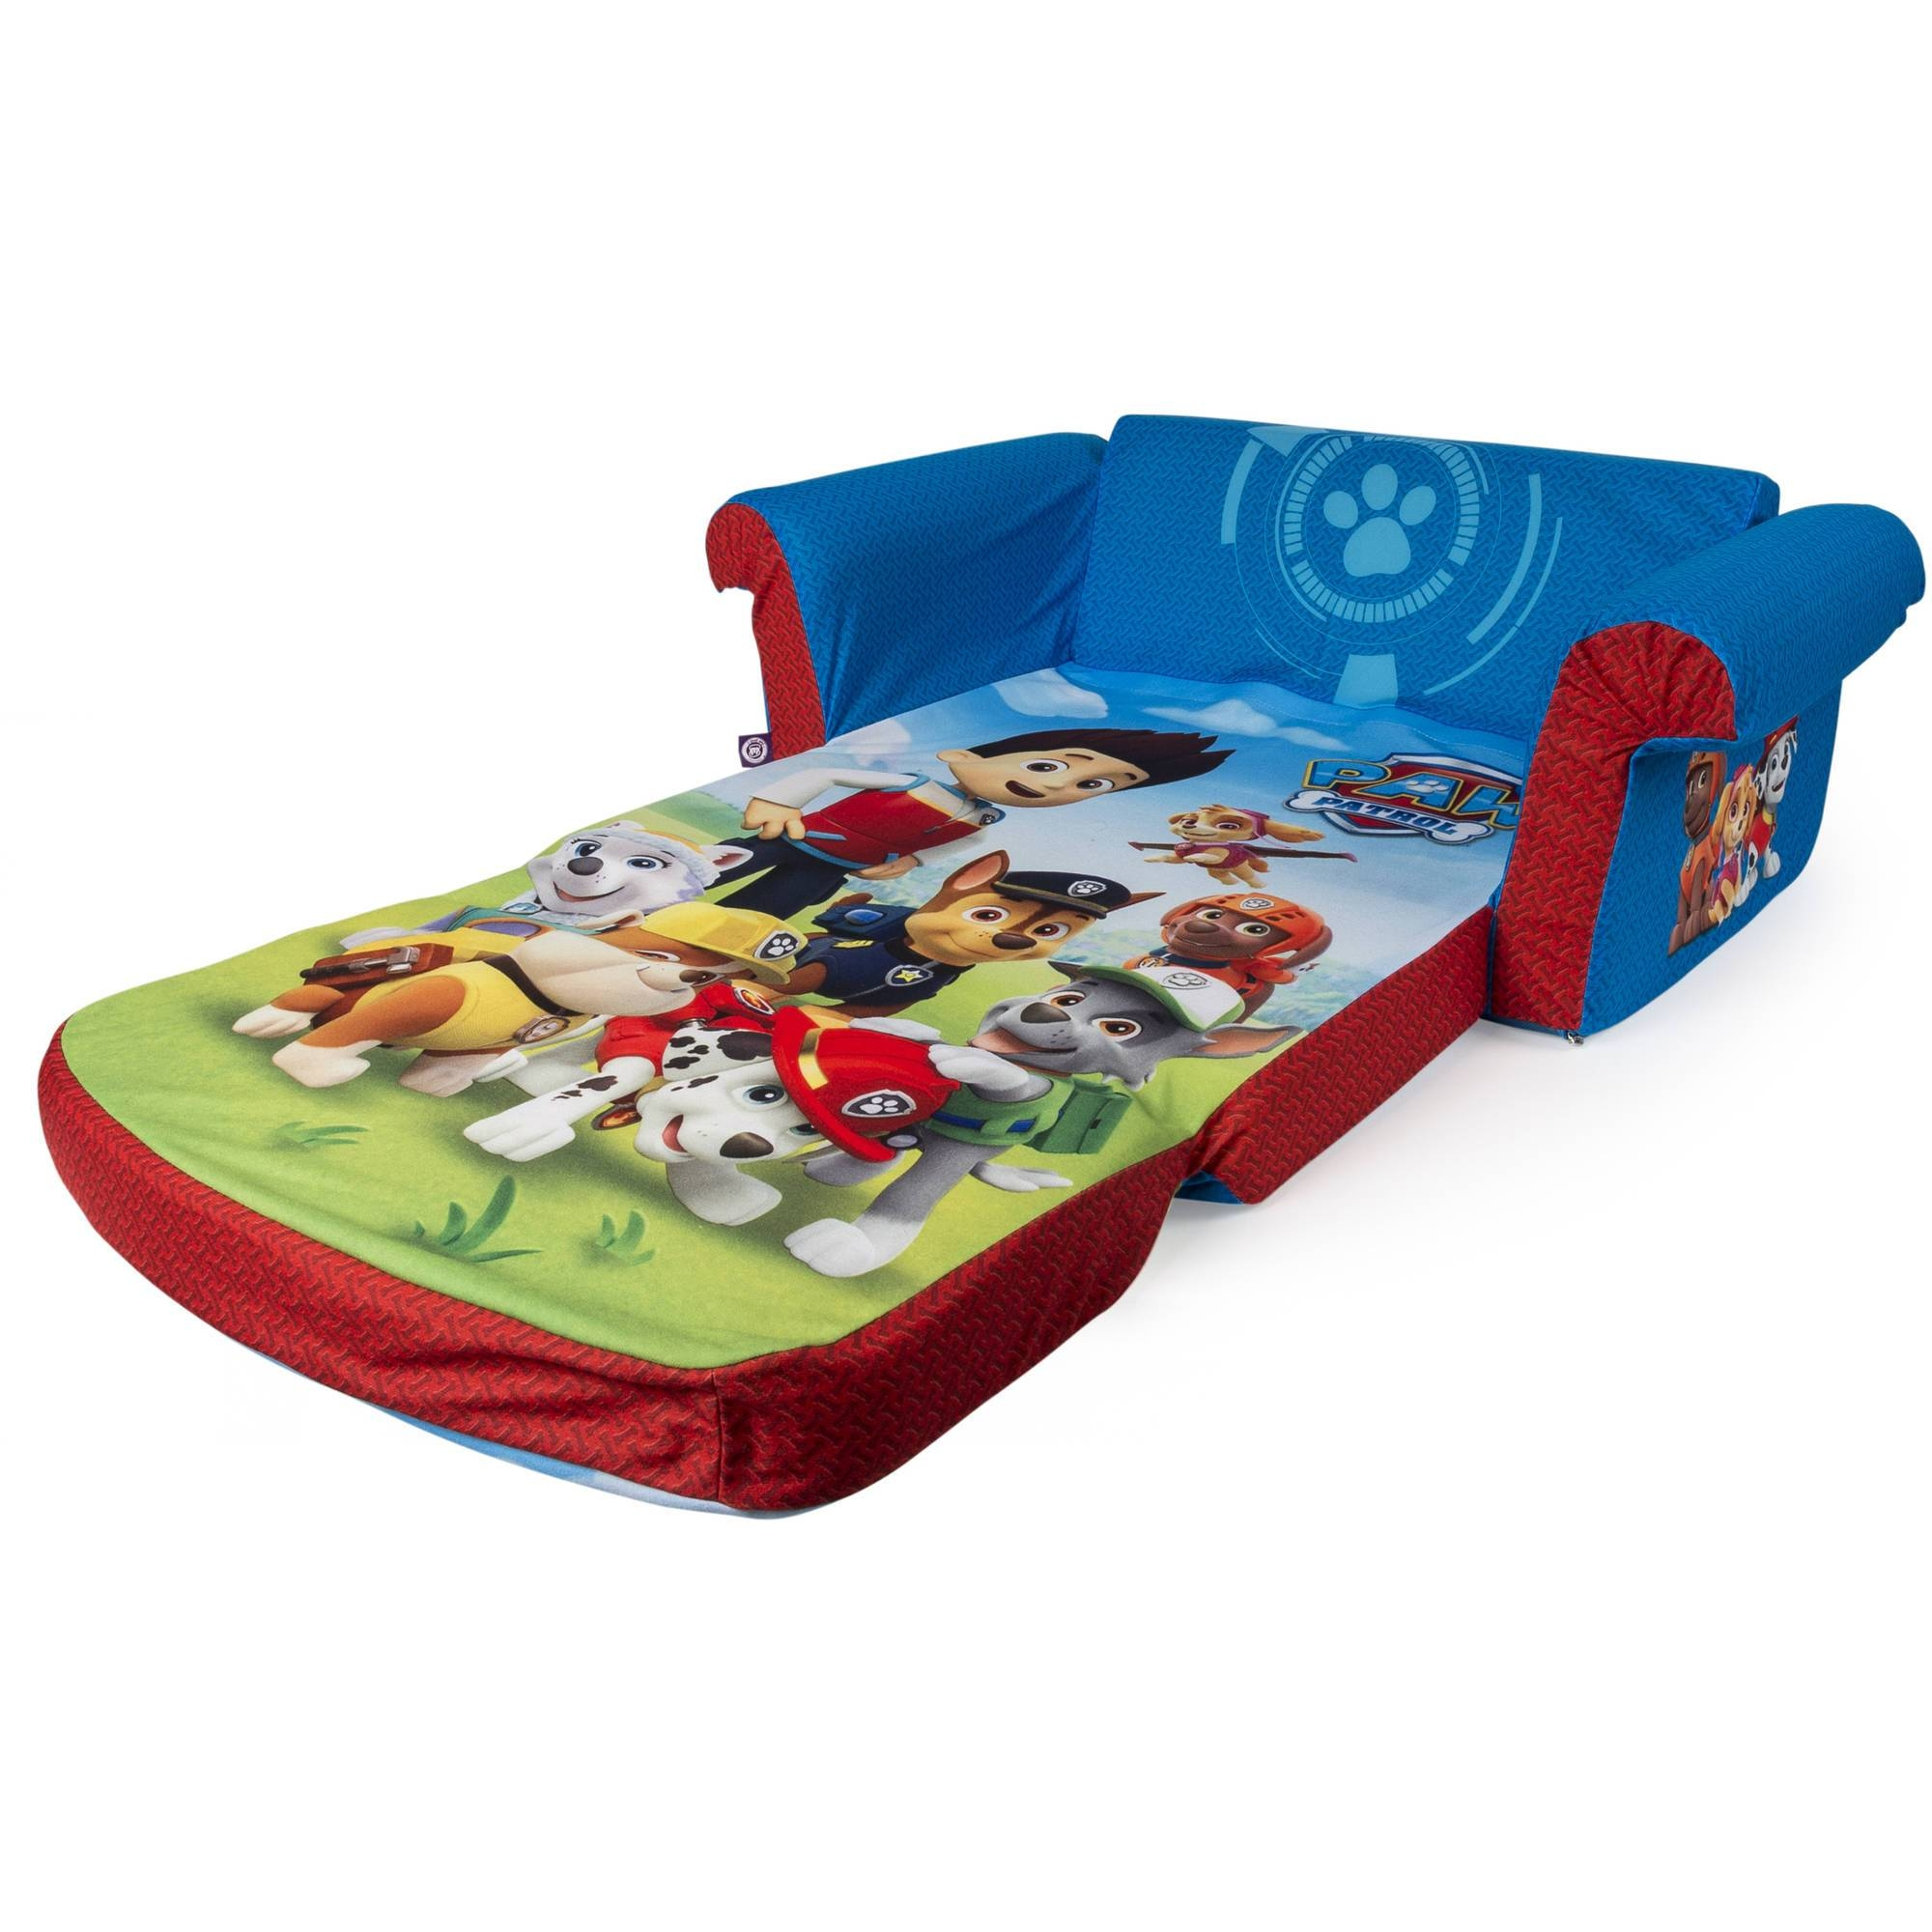 Marshmallow Furniture, Children's 2 In 1 Flip Open Foam Sofa with regard to Flip Out Sofa Bed Toddlers (Image 16 of 30)